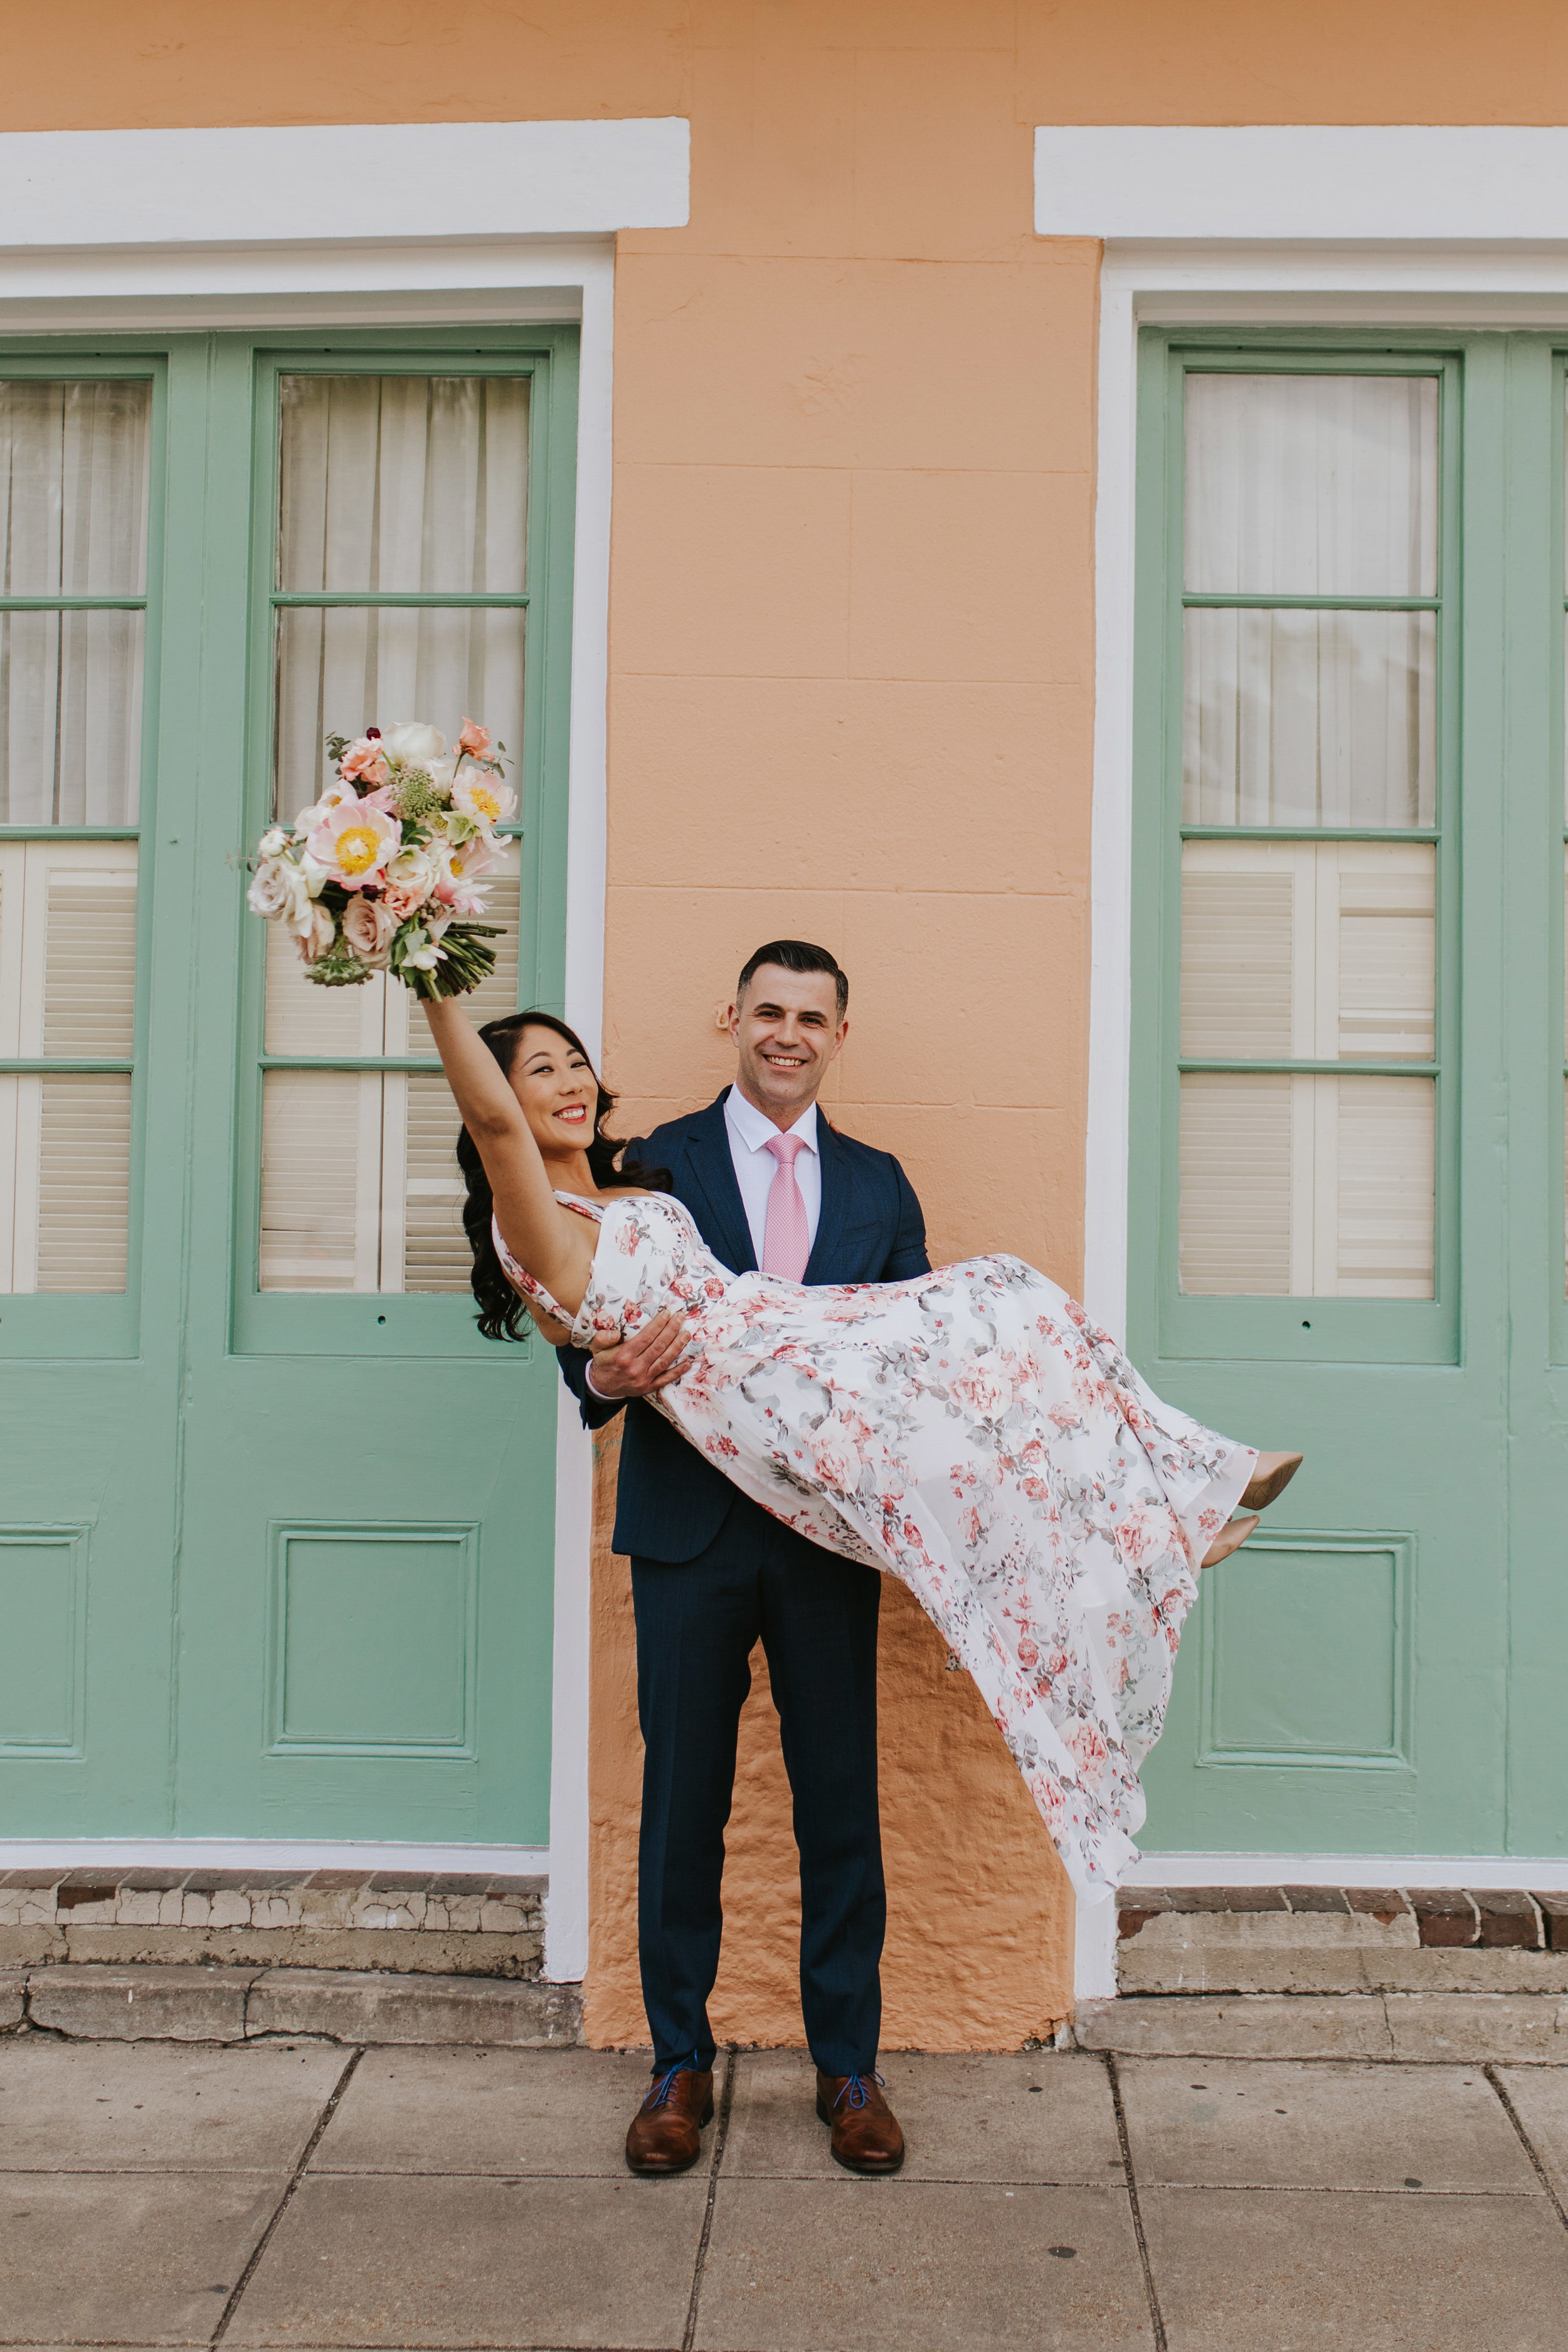 French Quarter Elopement New Orleans Wedding Photographer Ashley Biltz Photography7.jpg